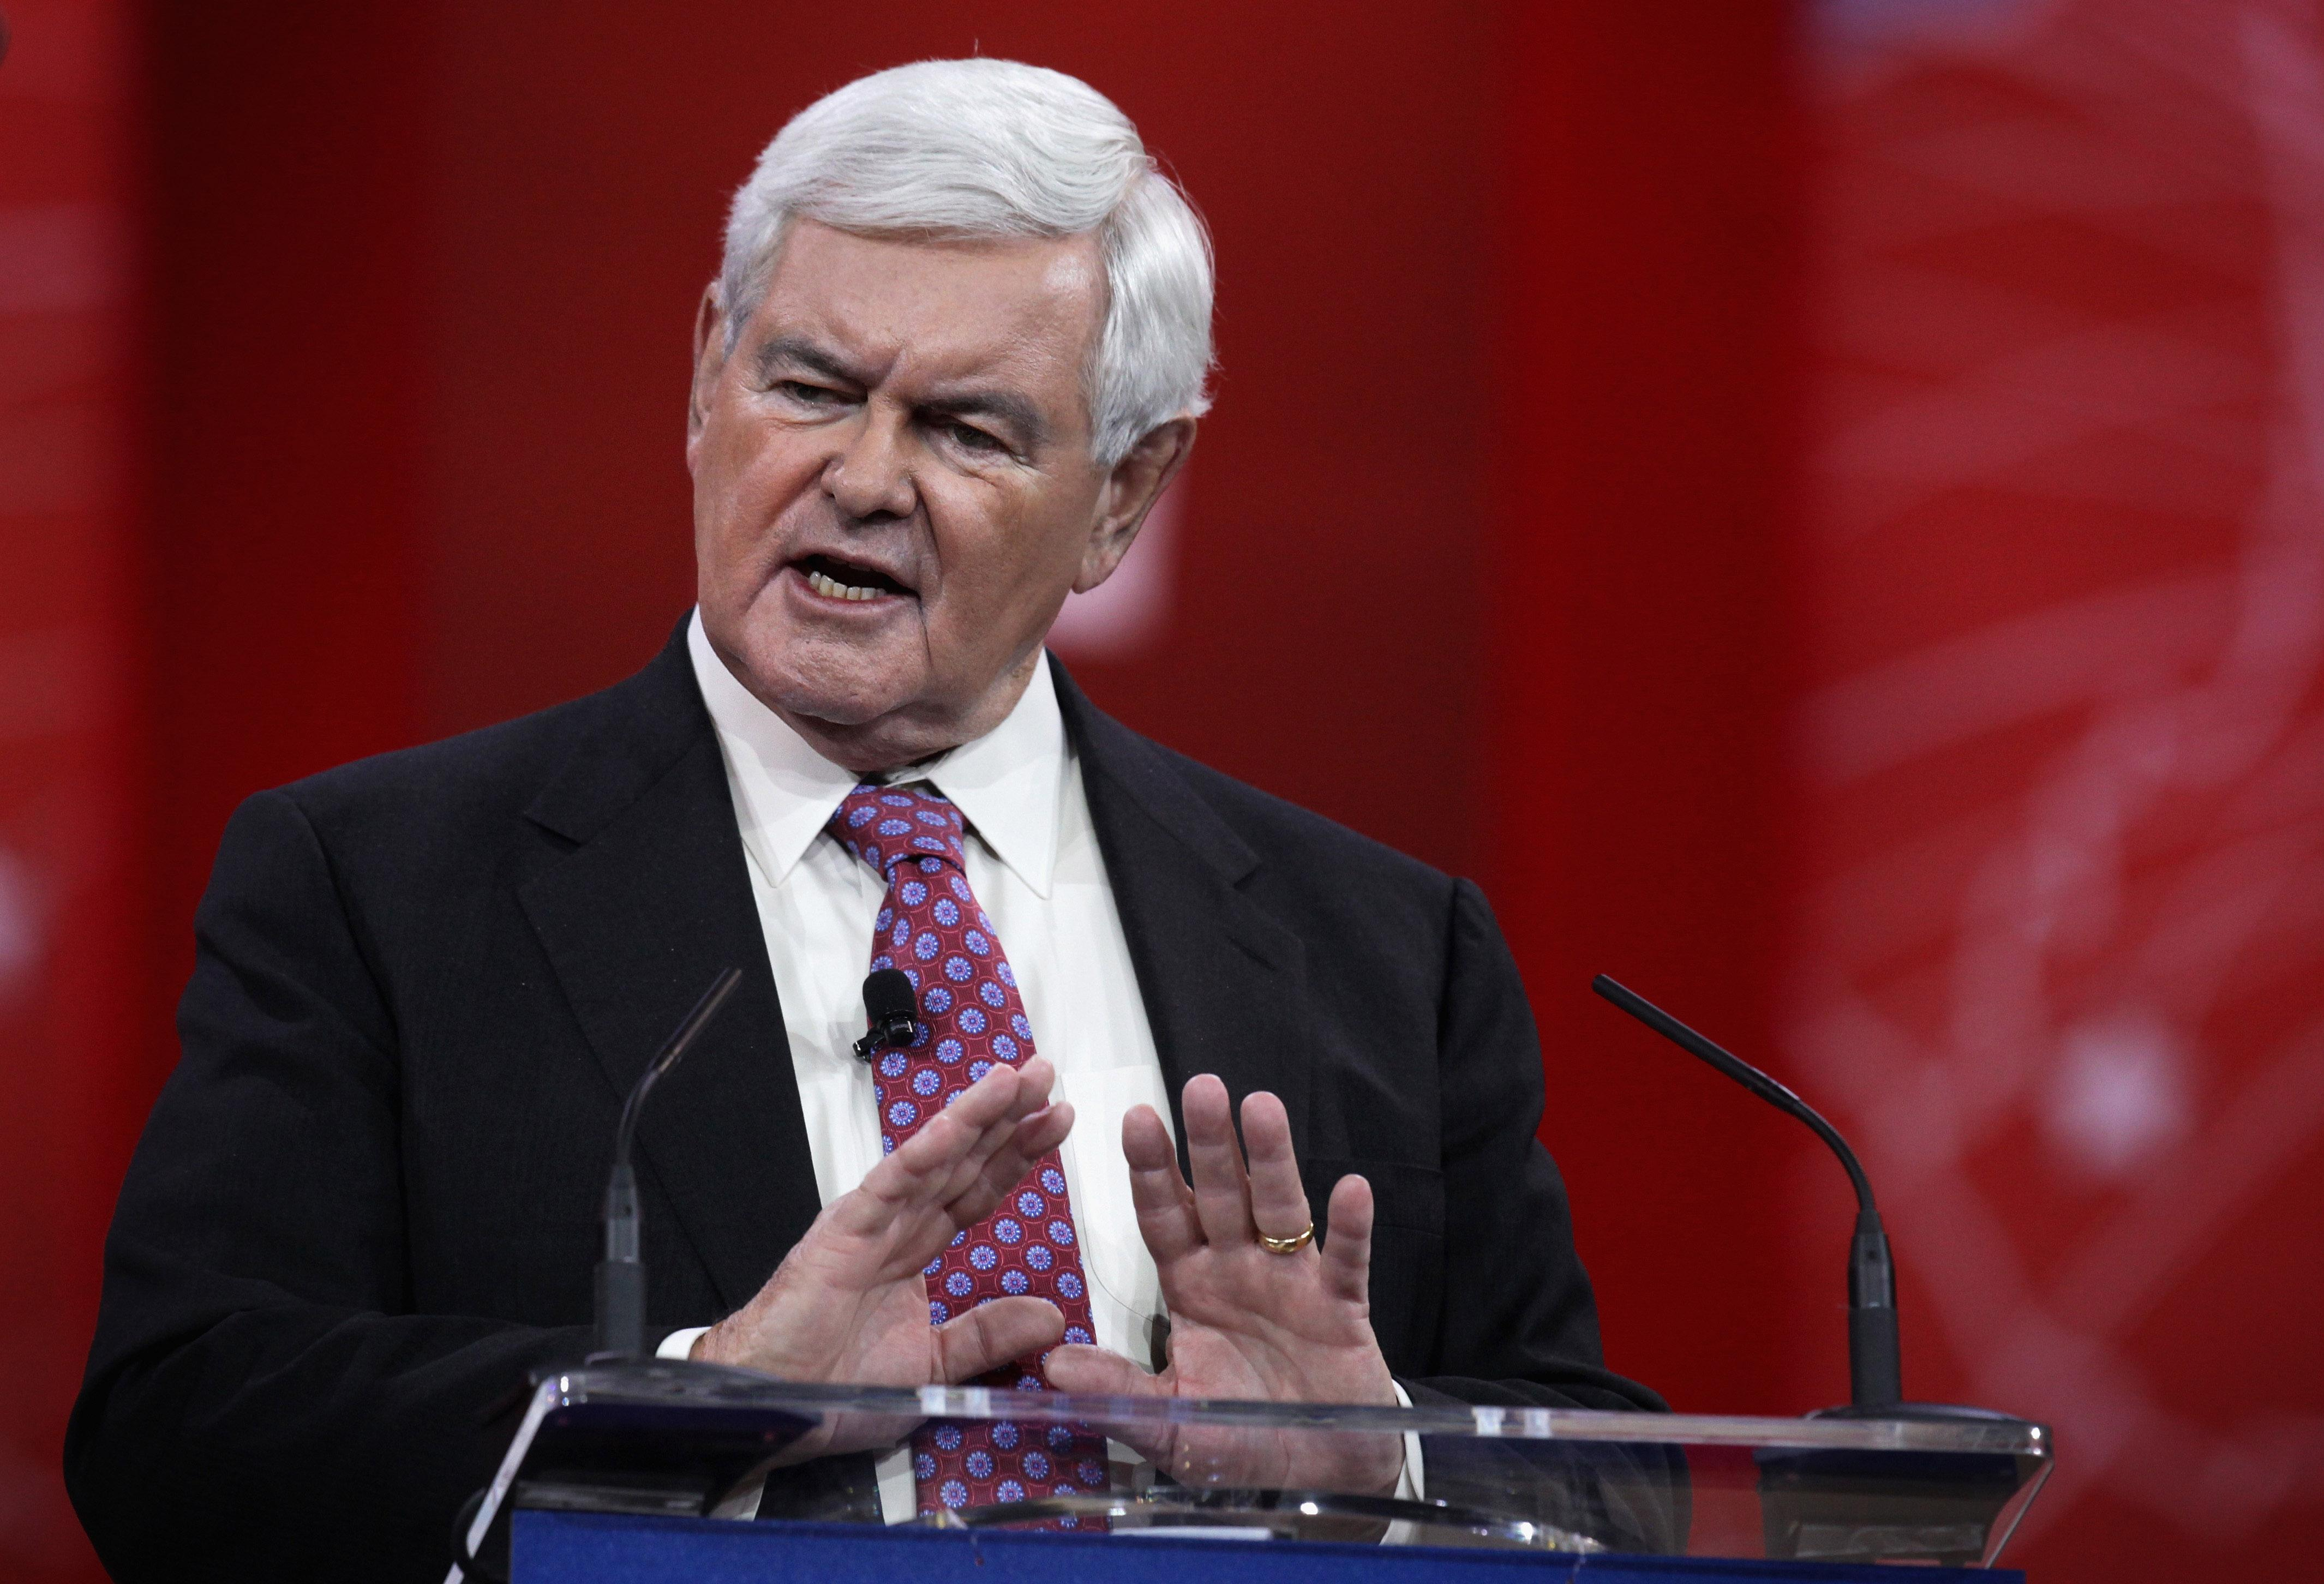 Gingrich: 'No Idea' What Trump Meant By Tweet Appearing To Confirm Probe